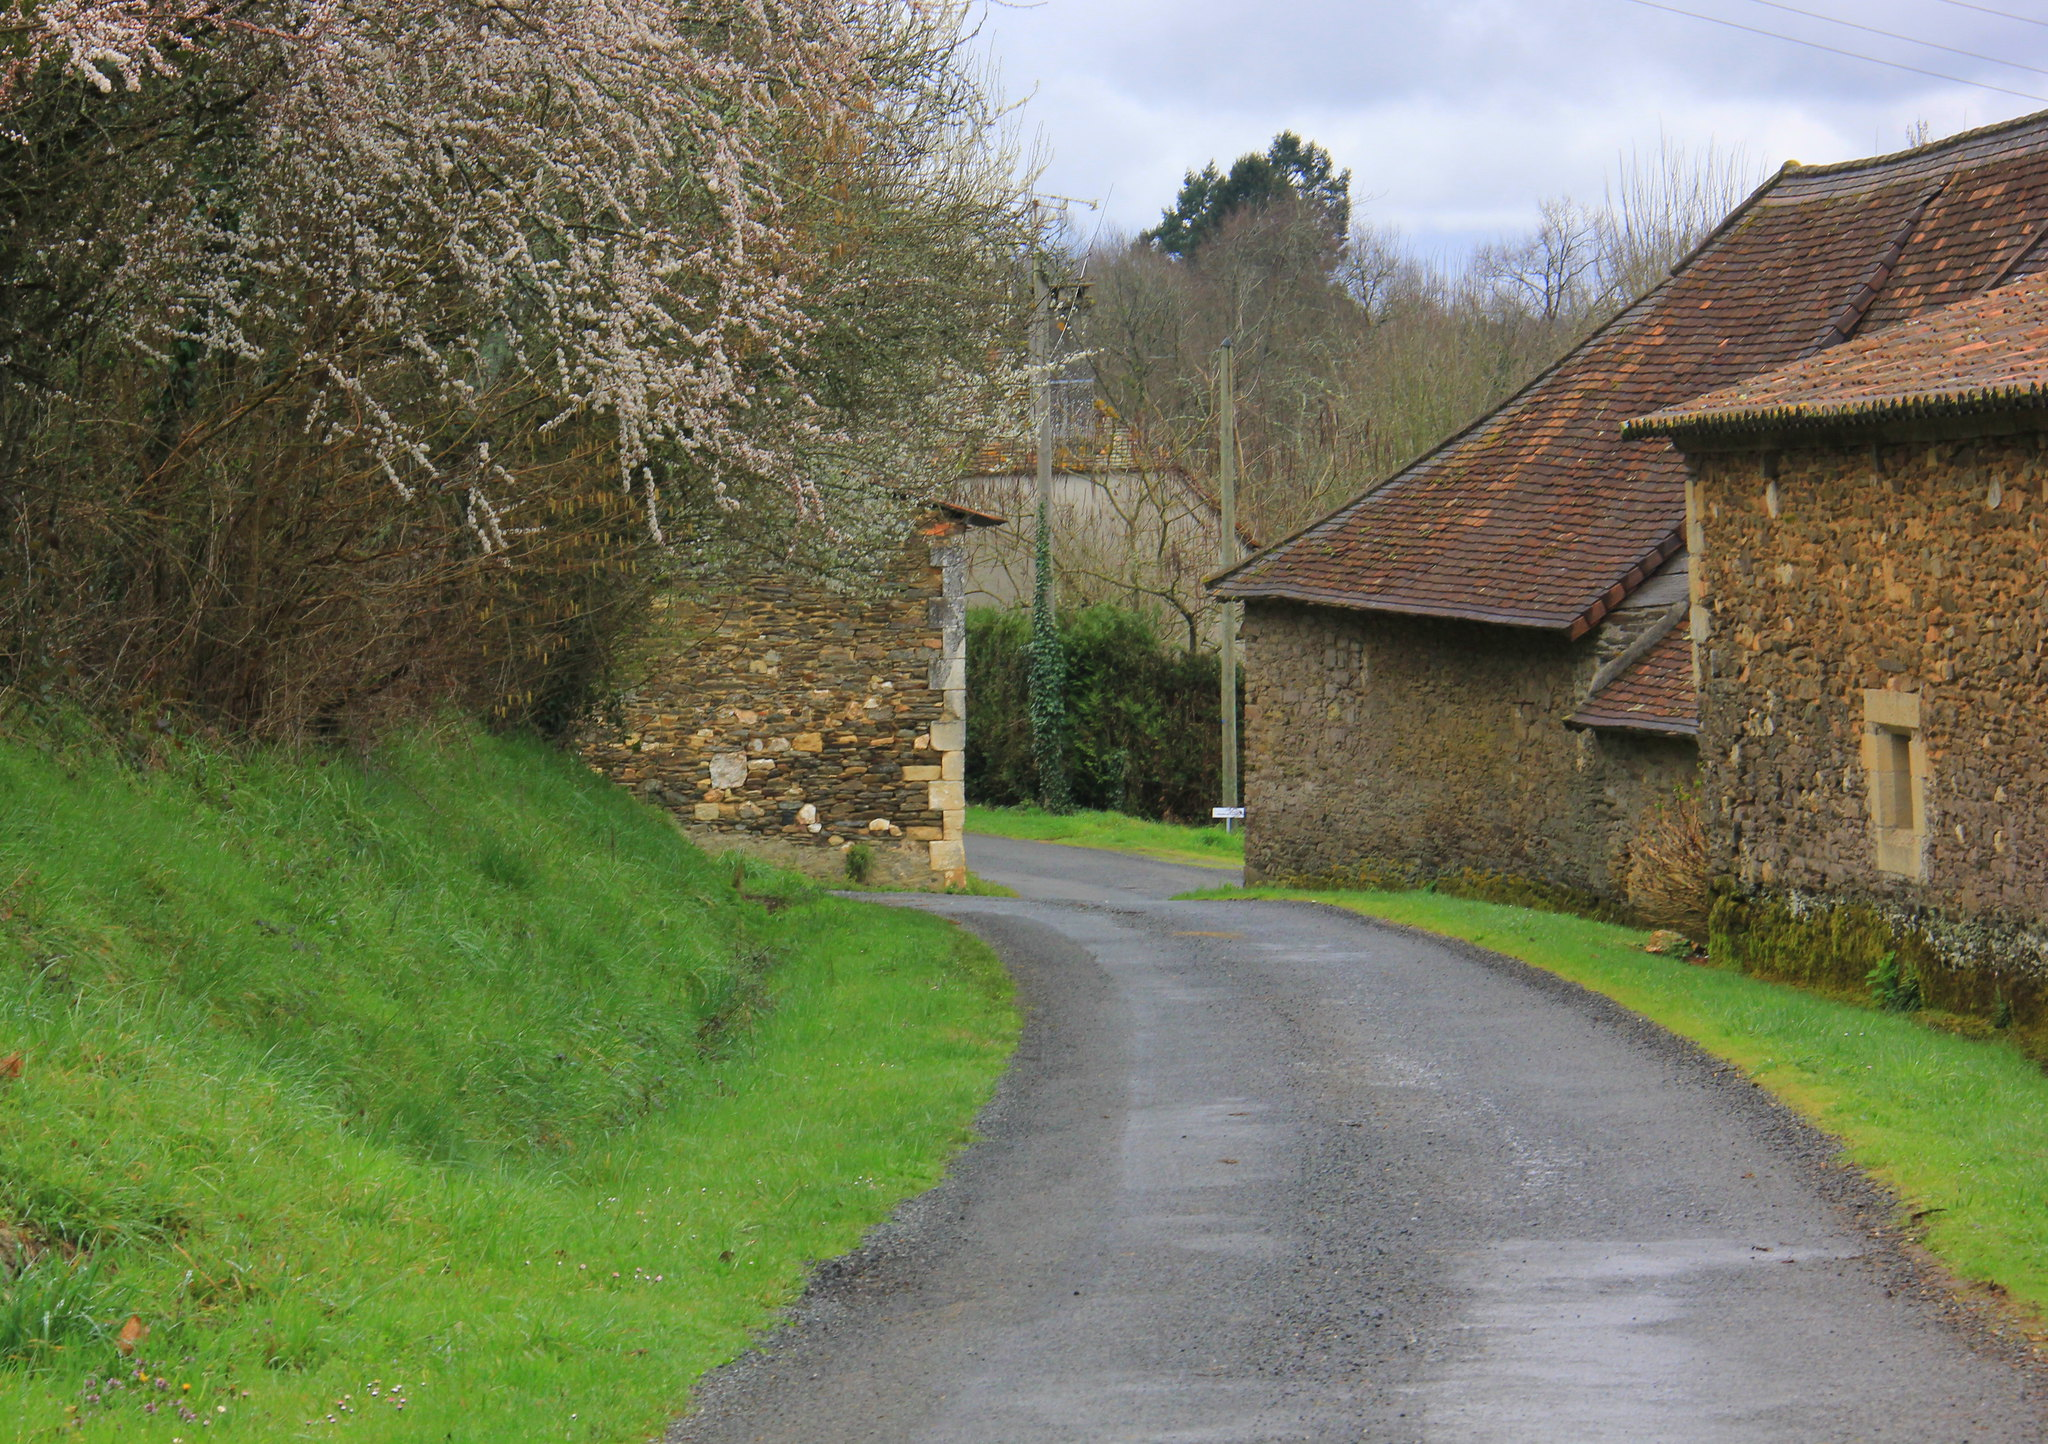 spring in dordogne makes the greenery fresh and beautiful